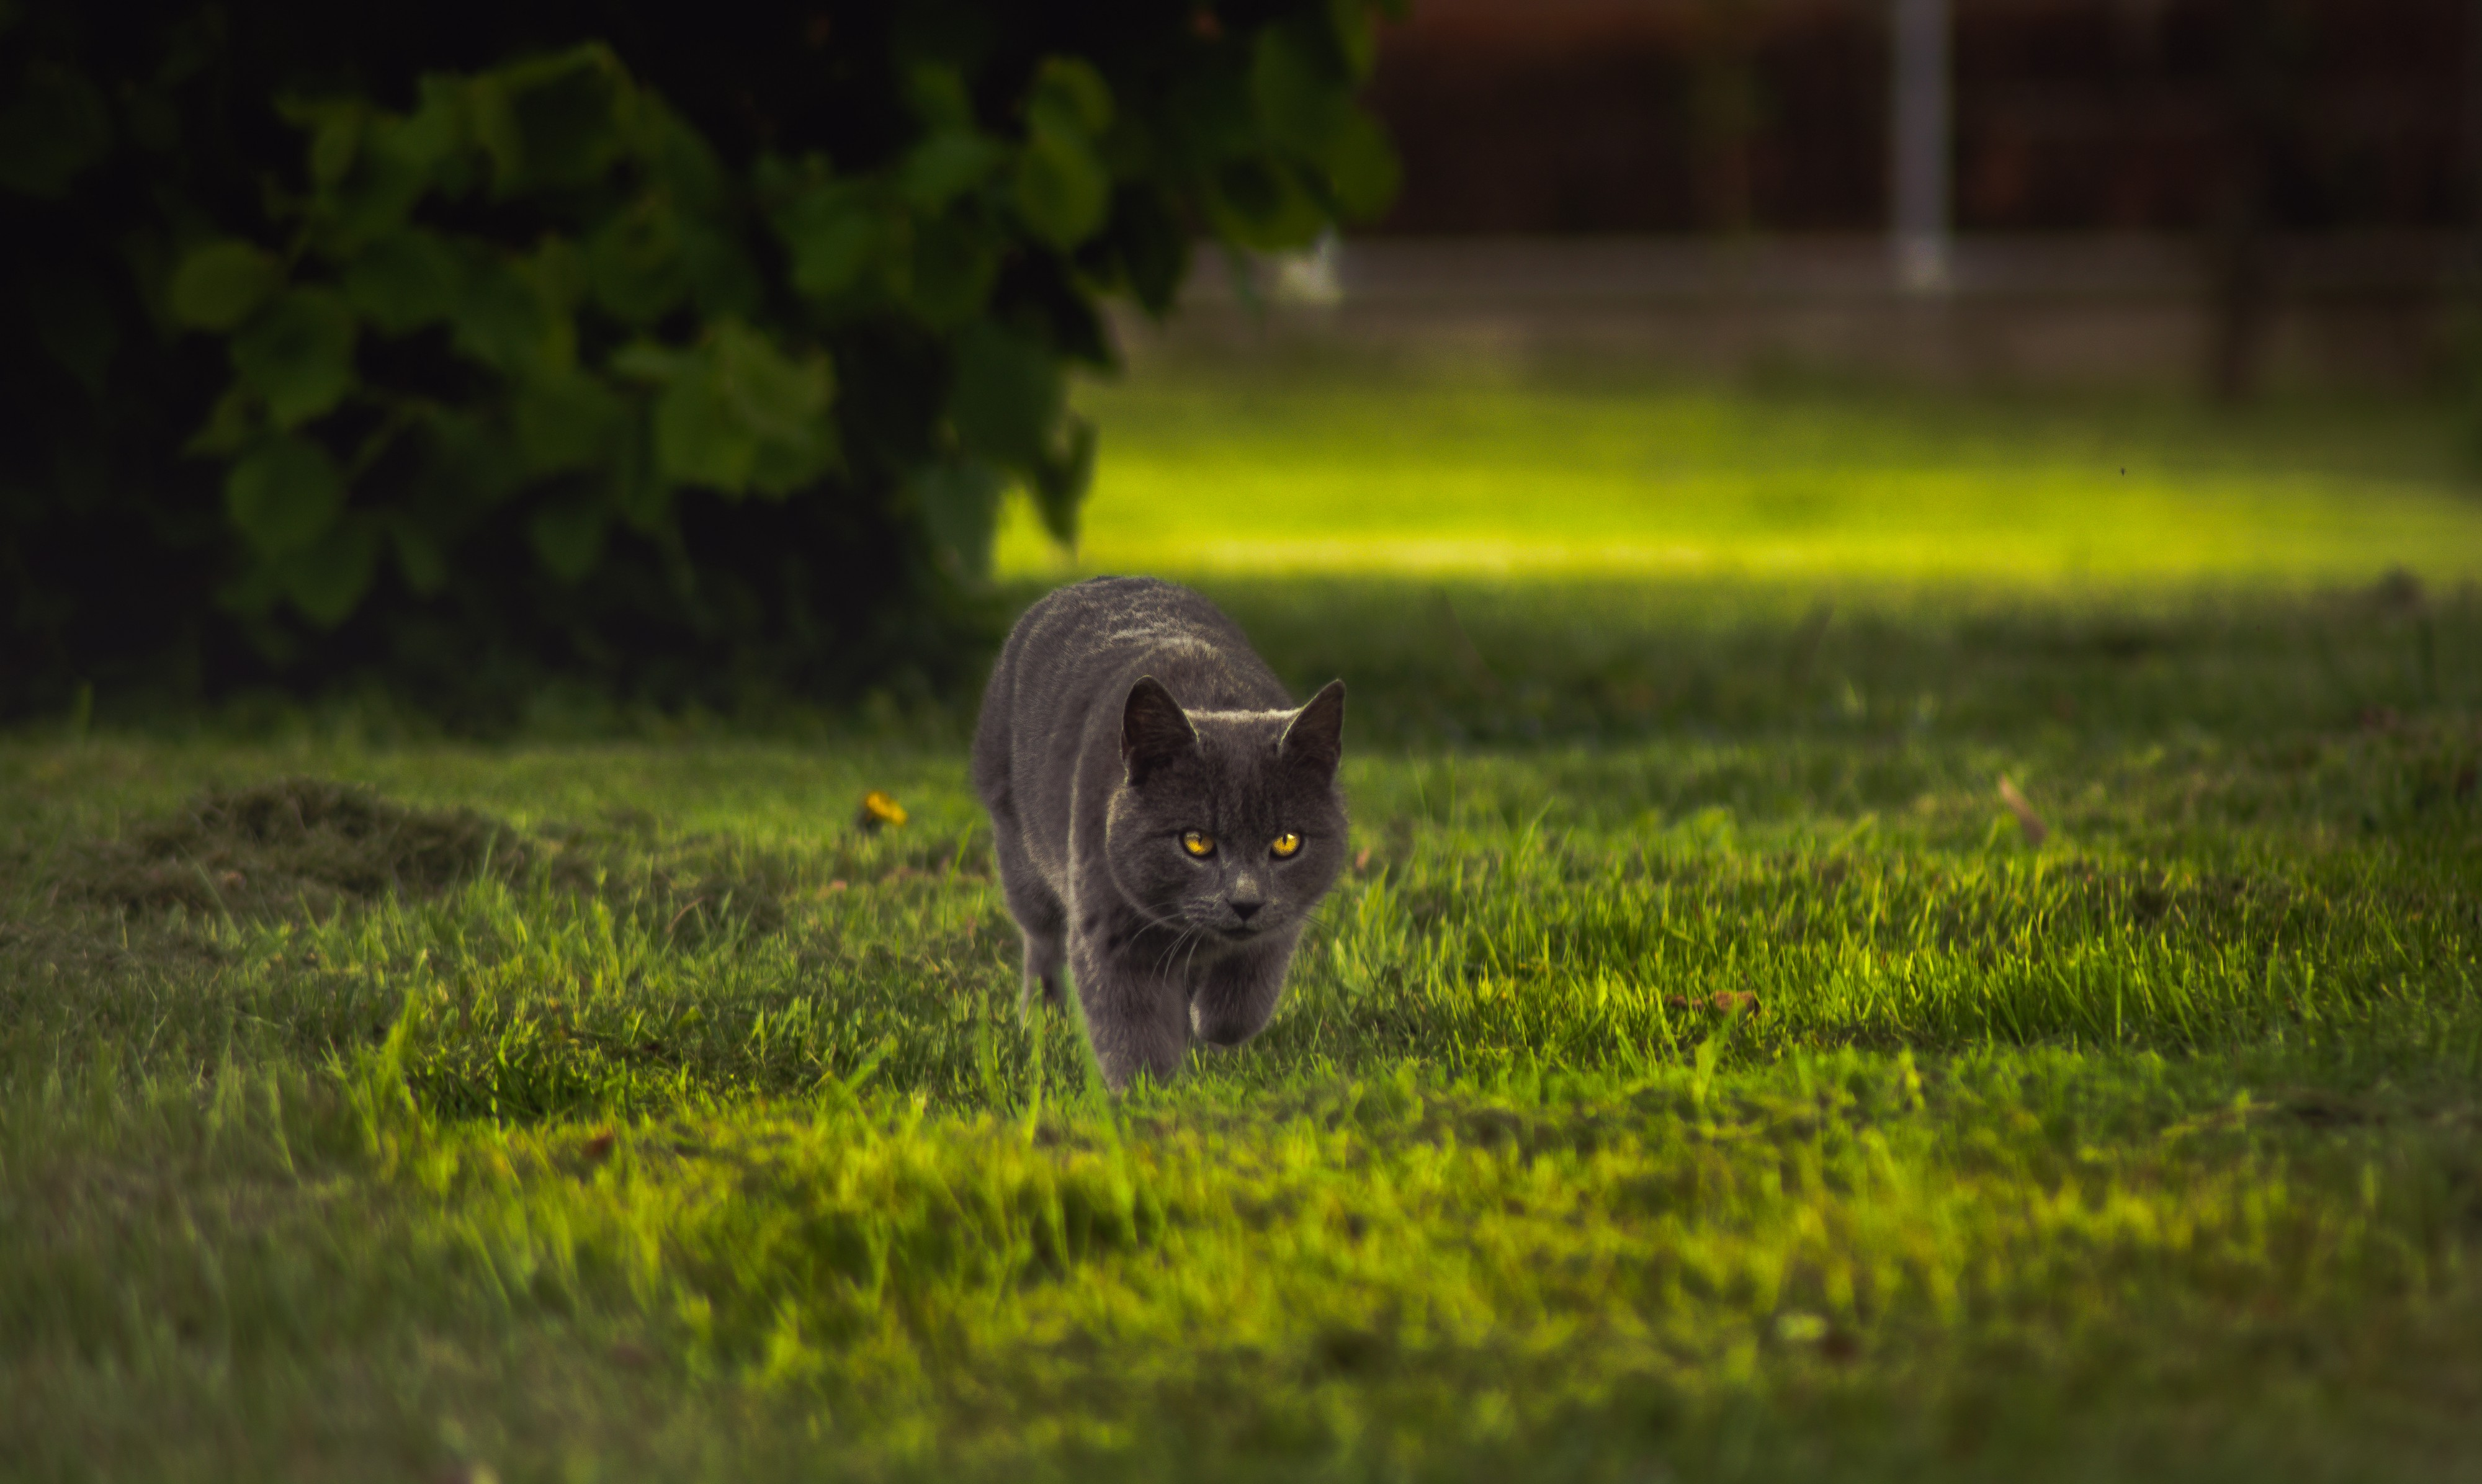 Gray cat with green eyes, walking in grass toward viewer